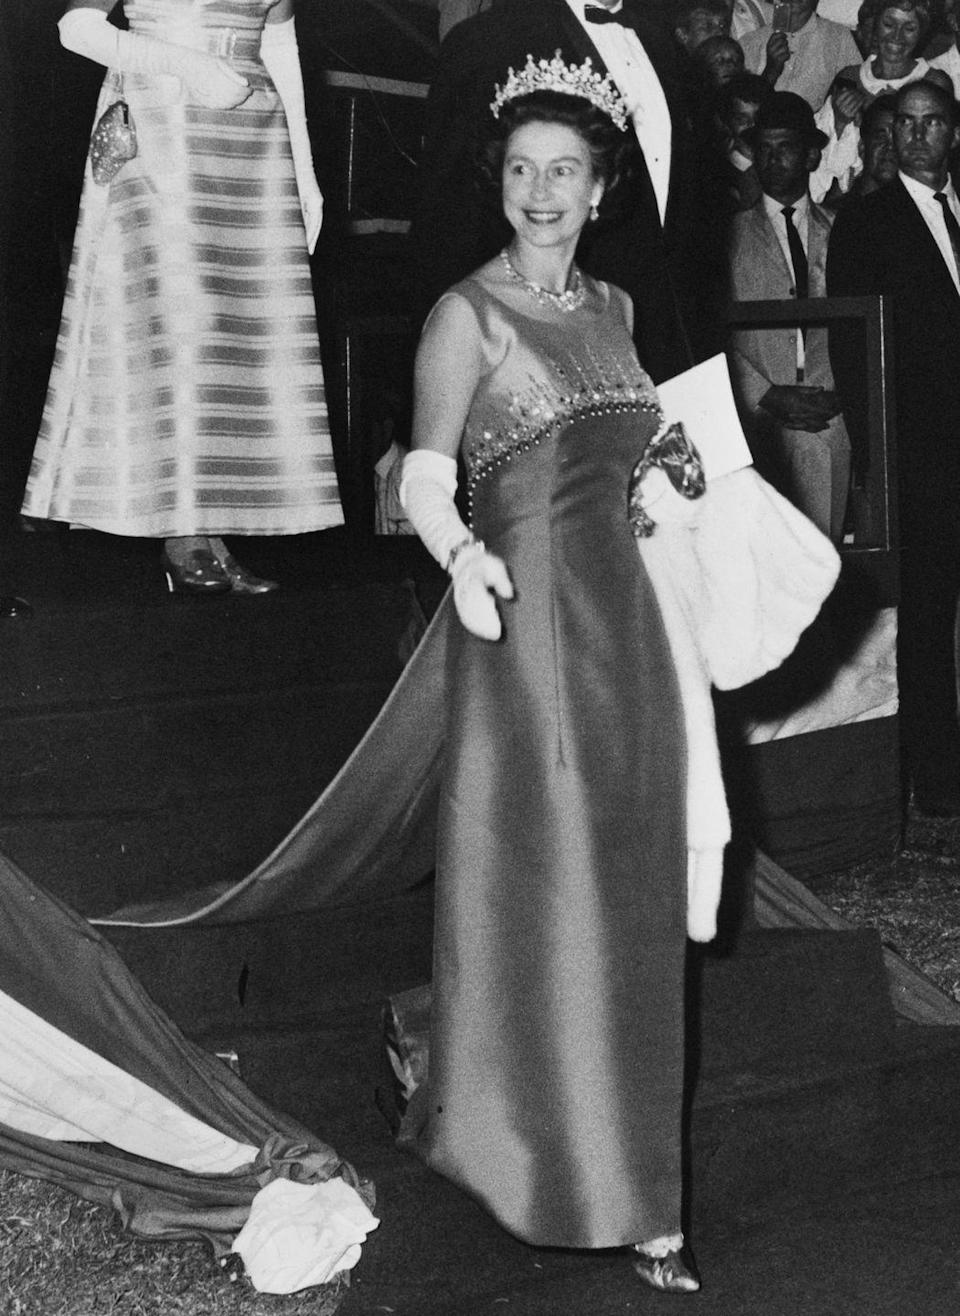 <p>Queen Elizabeth stunned during her royal tour of Australia in a sleeveless satin sheath evening gown. The regal dress was completed with a crystal embellished bodice and train. </p>